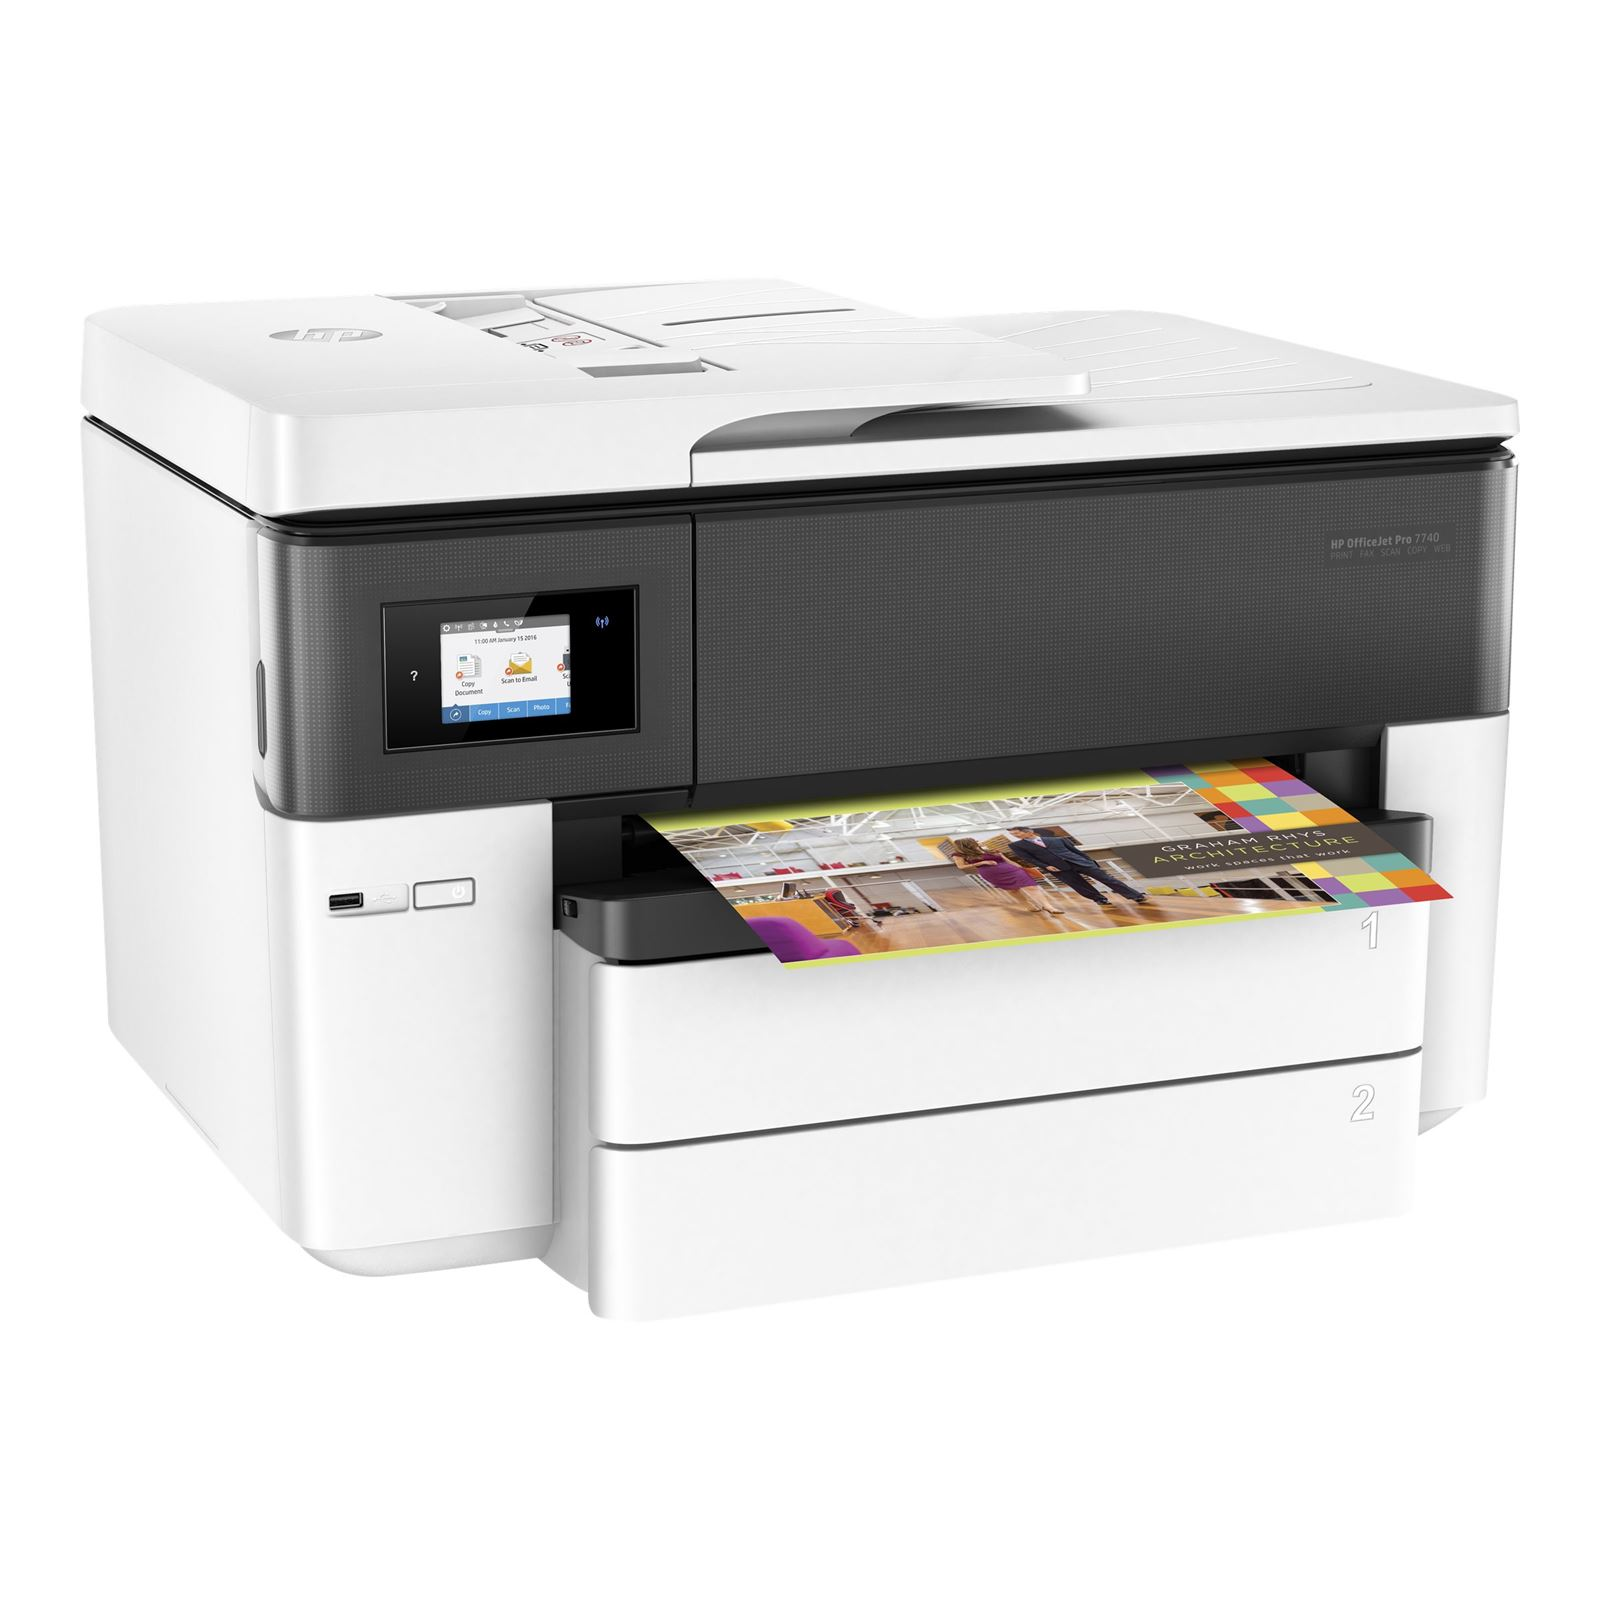 HP Officejet 7740 Wide Format AiO/ A3+,22/18ppm